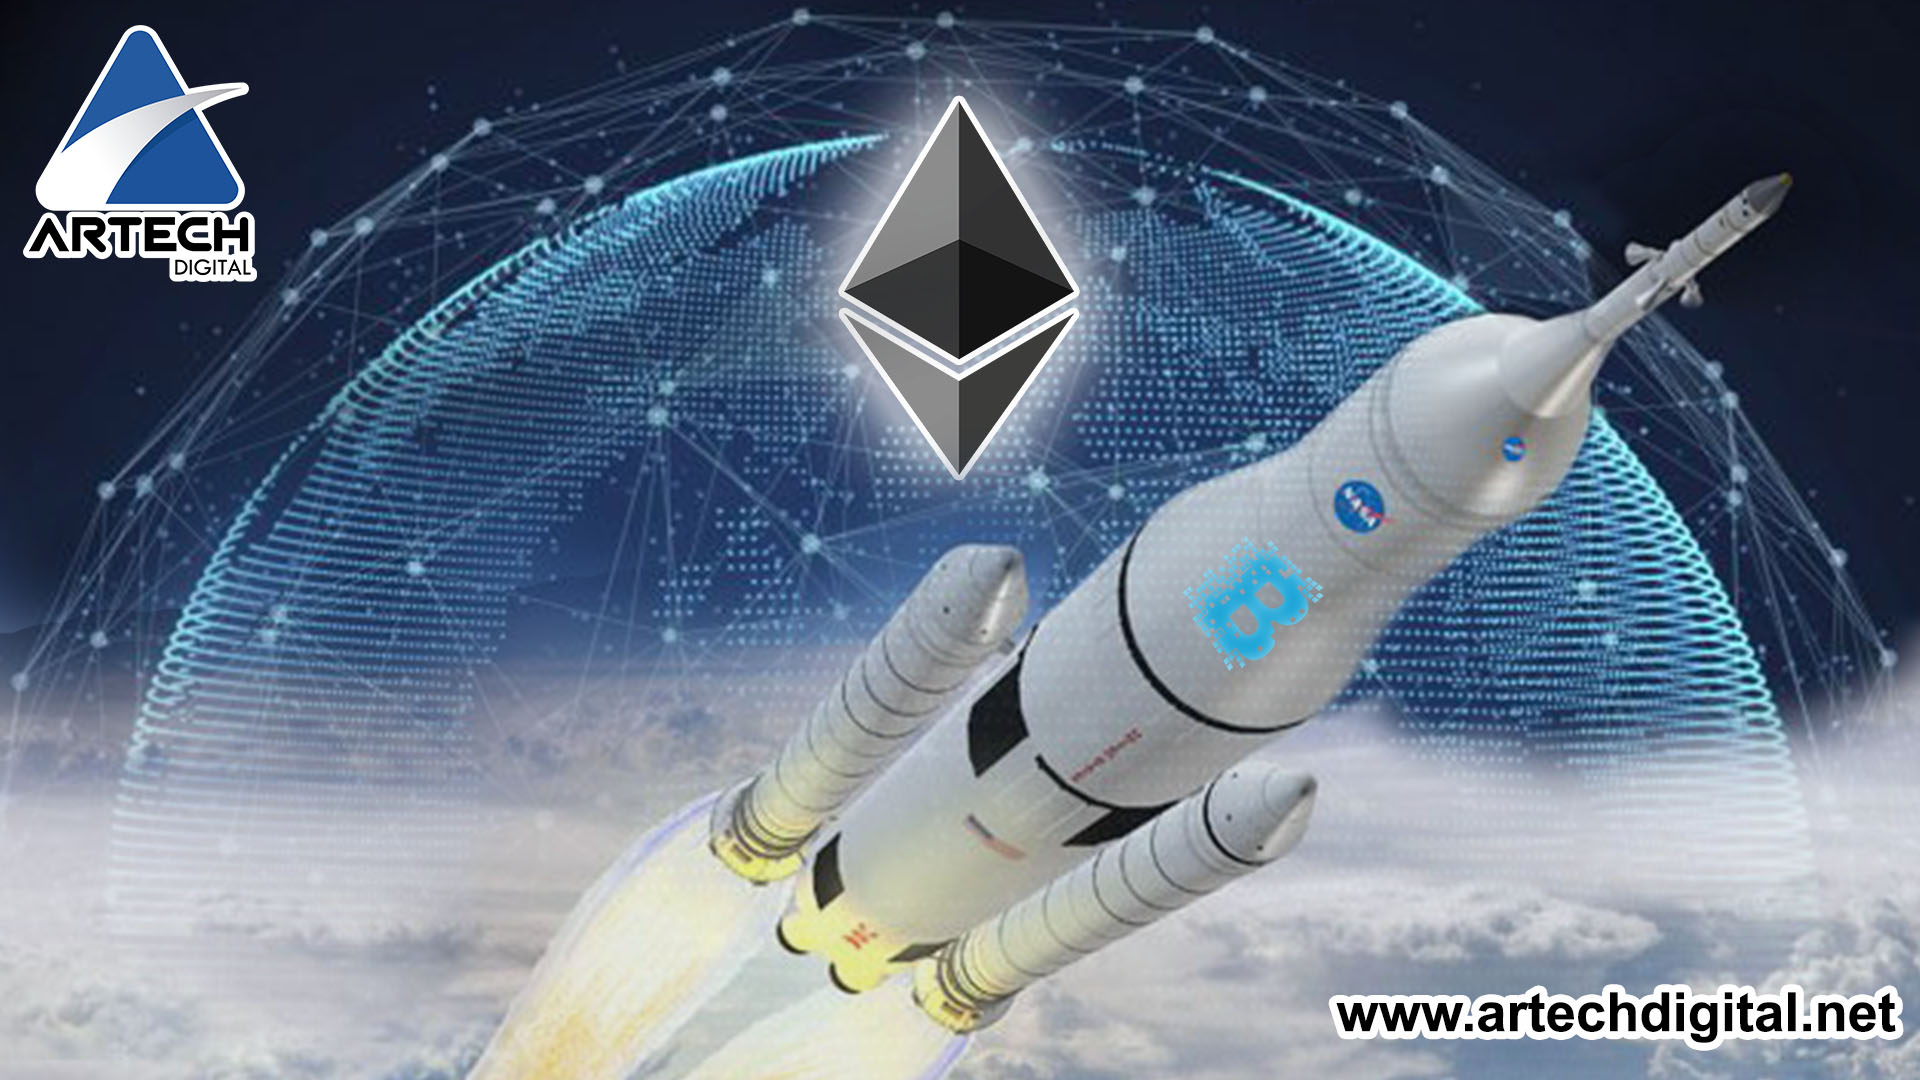 NASA to Develop Spacecraft with Blockchain Technology